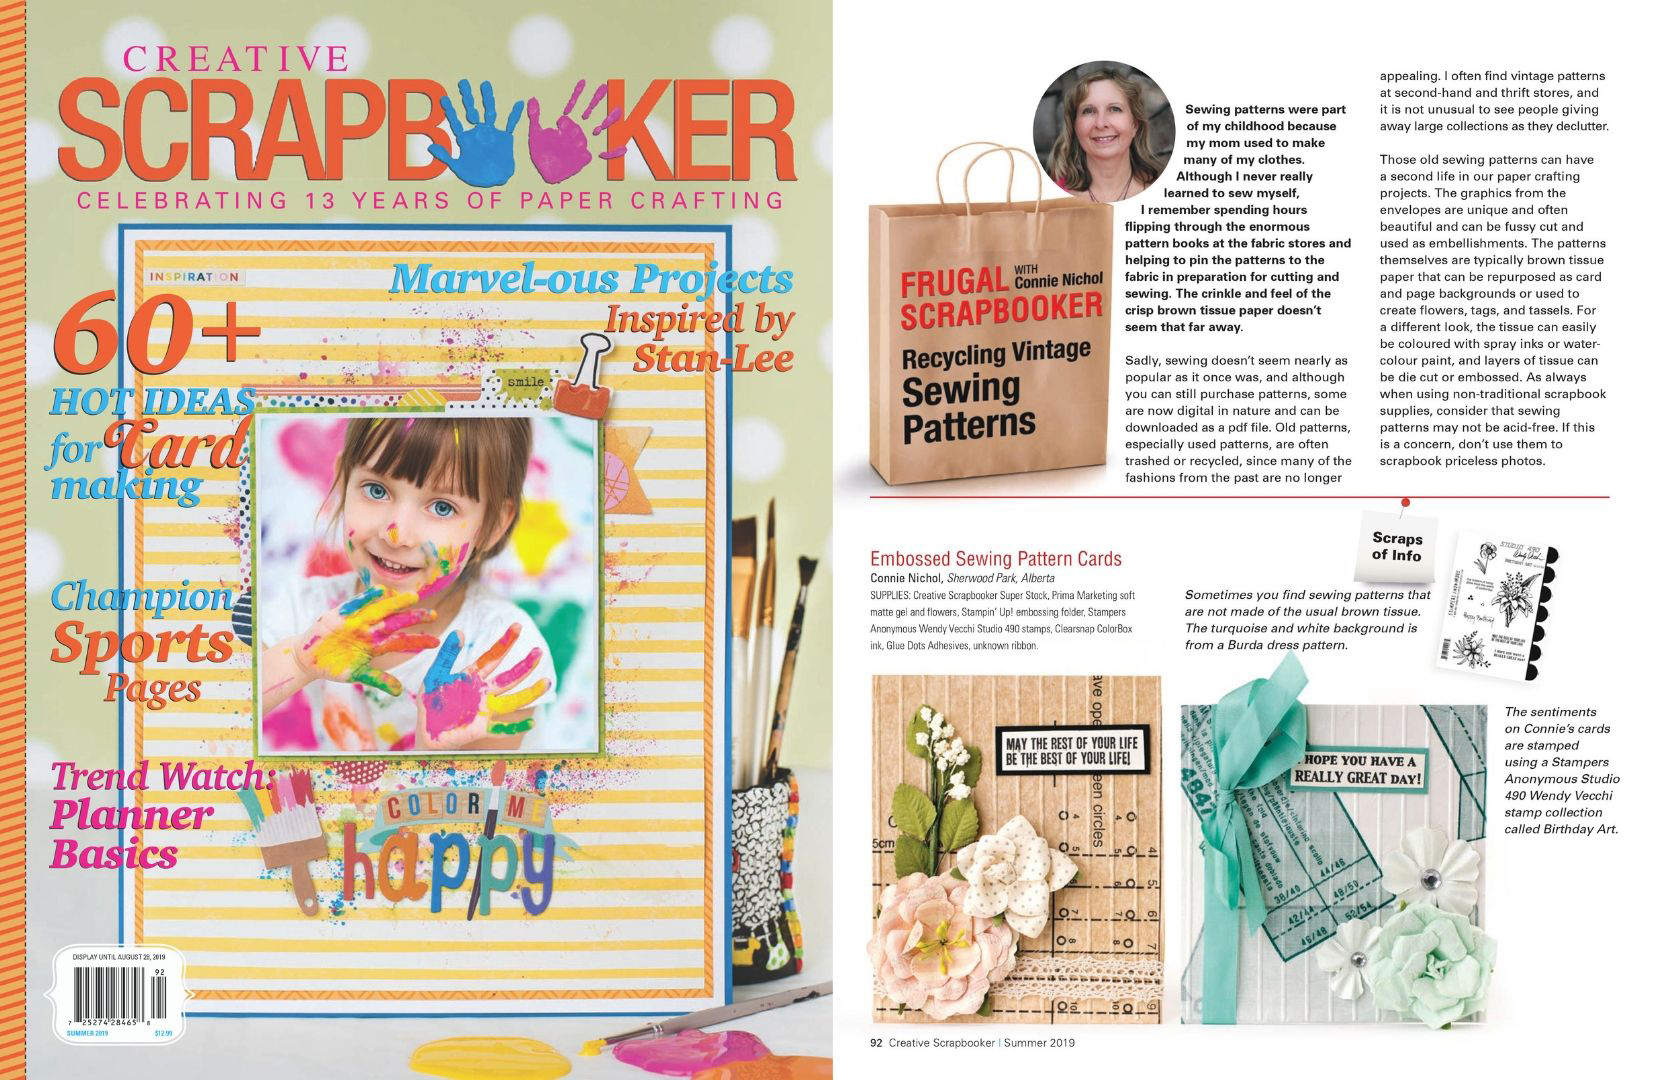 Frugal Scrapbooker Creative Scrapbooker Magazine Connie Nichol